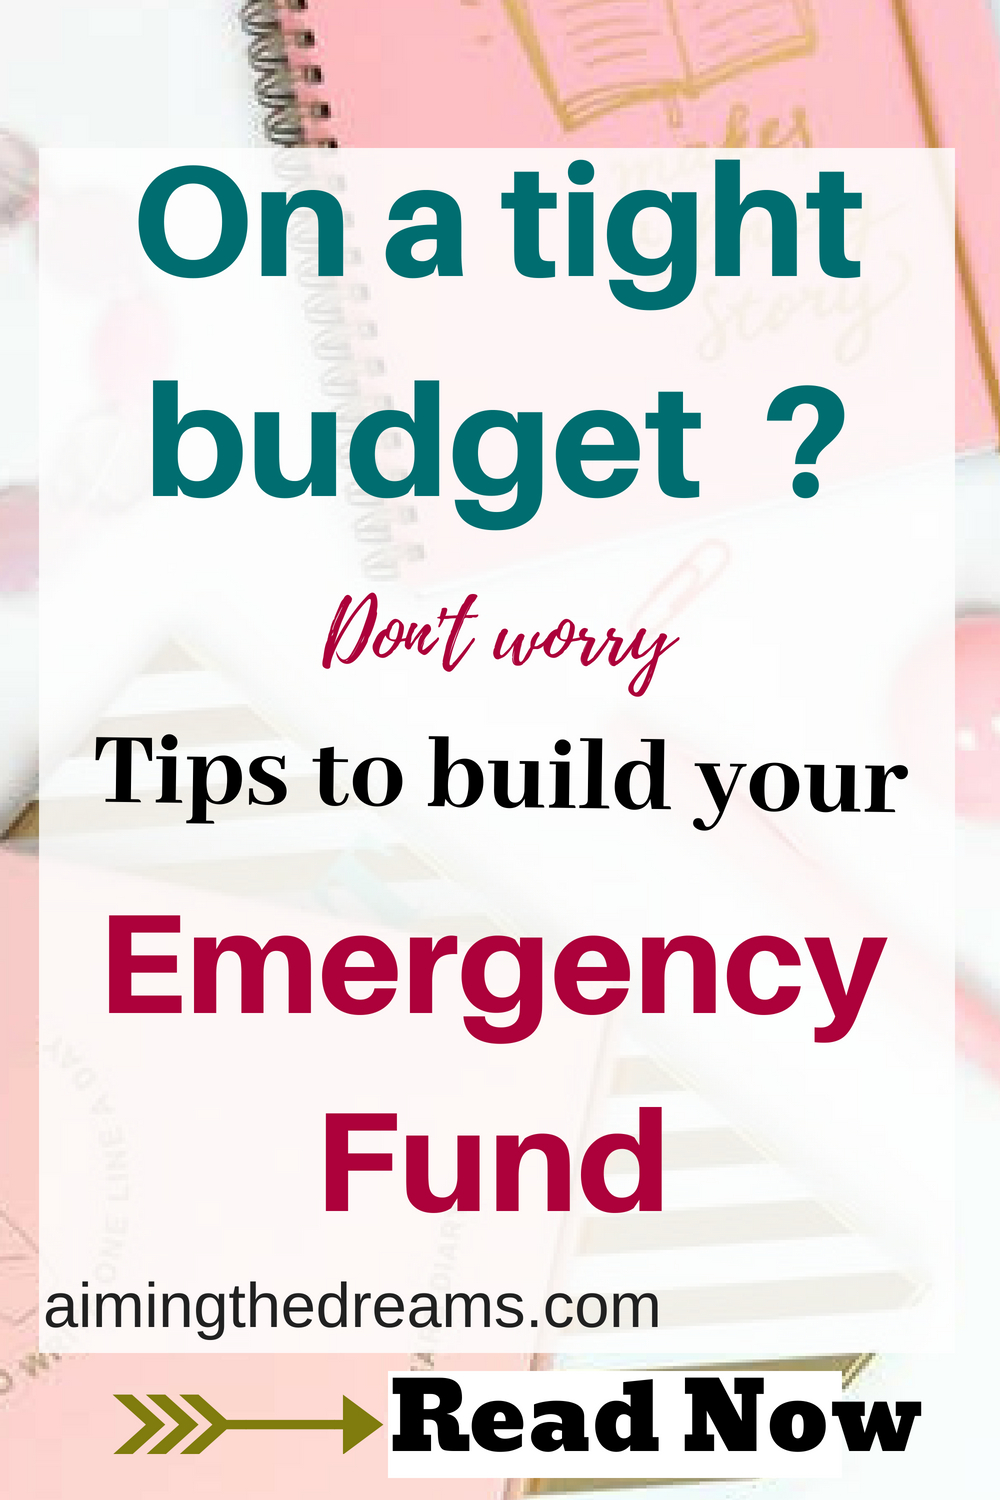 You can build your emergency fund even if you are on a tight budget. Try to squeeze money from all your chores and start earning from side hustles.